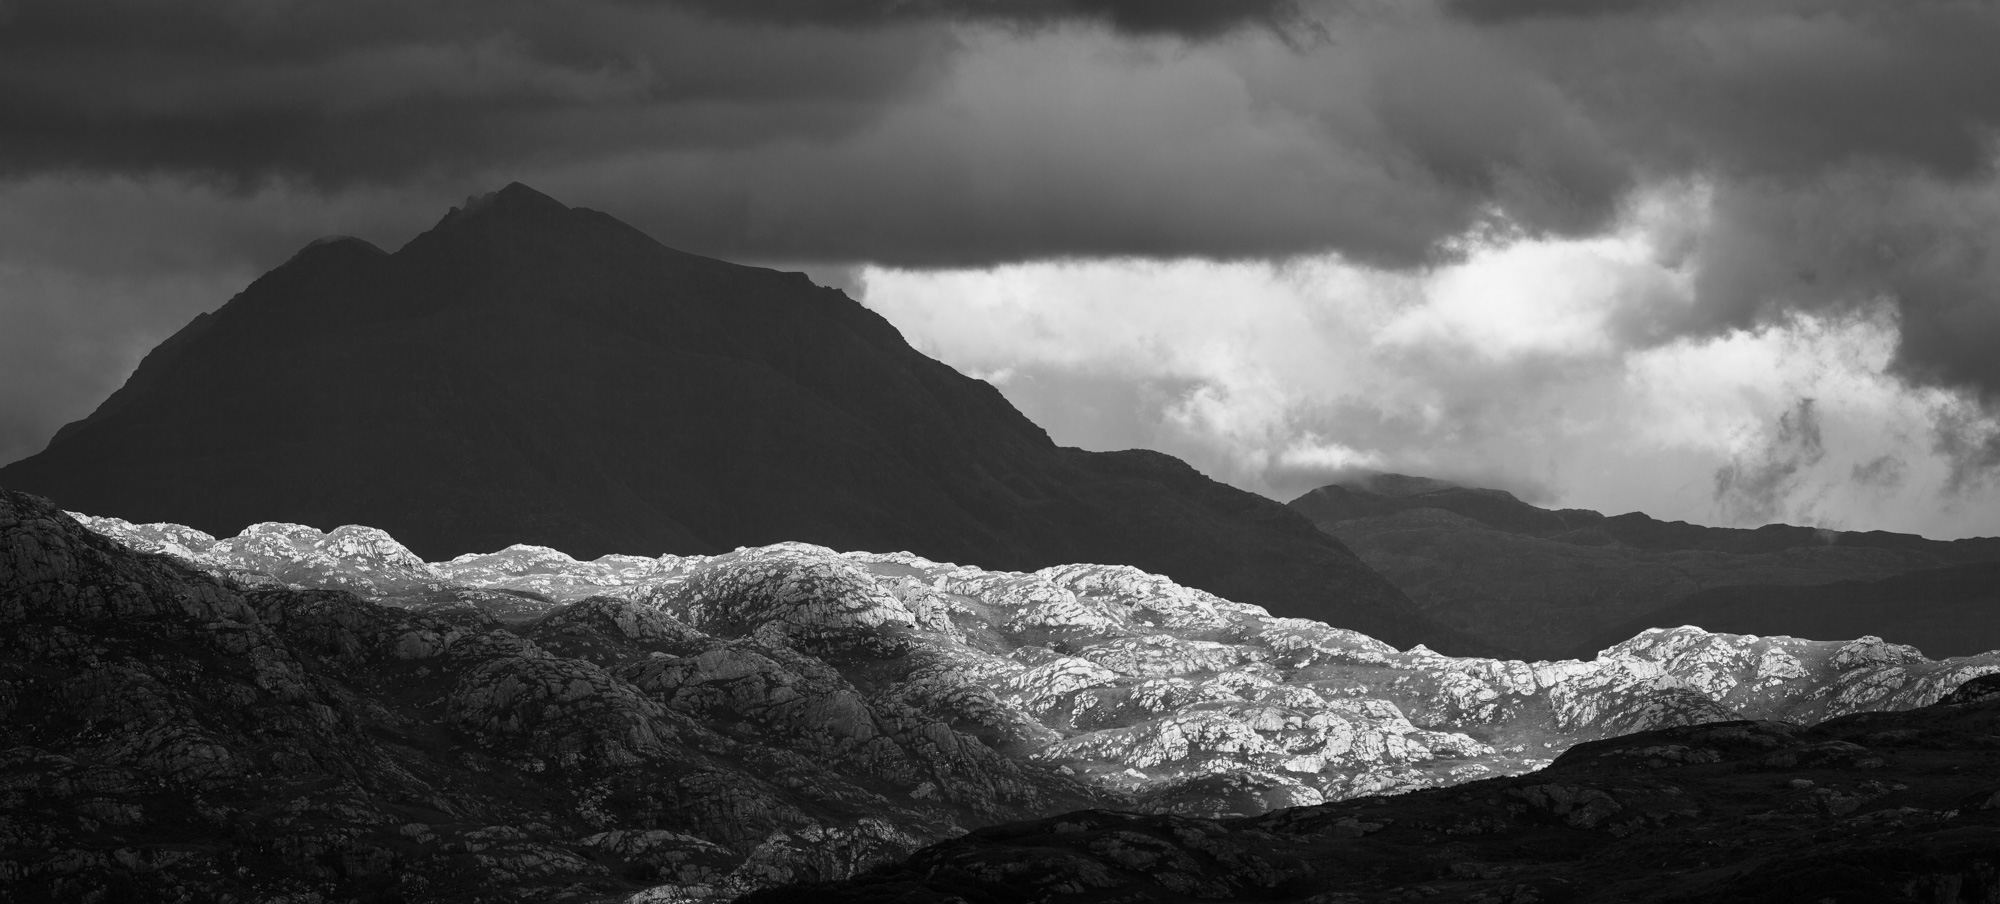 ©_Mark_Maio_Mountain Range, Wester Ross, Scotland.jpg